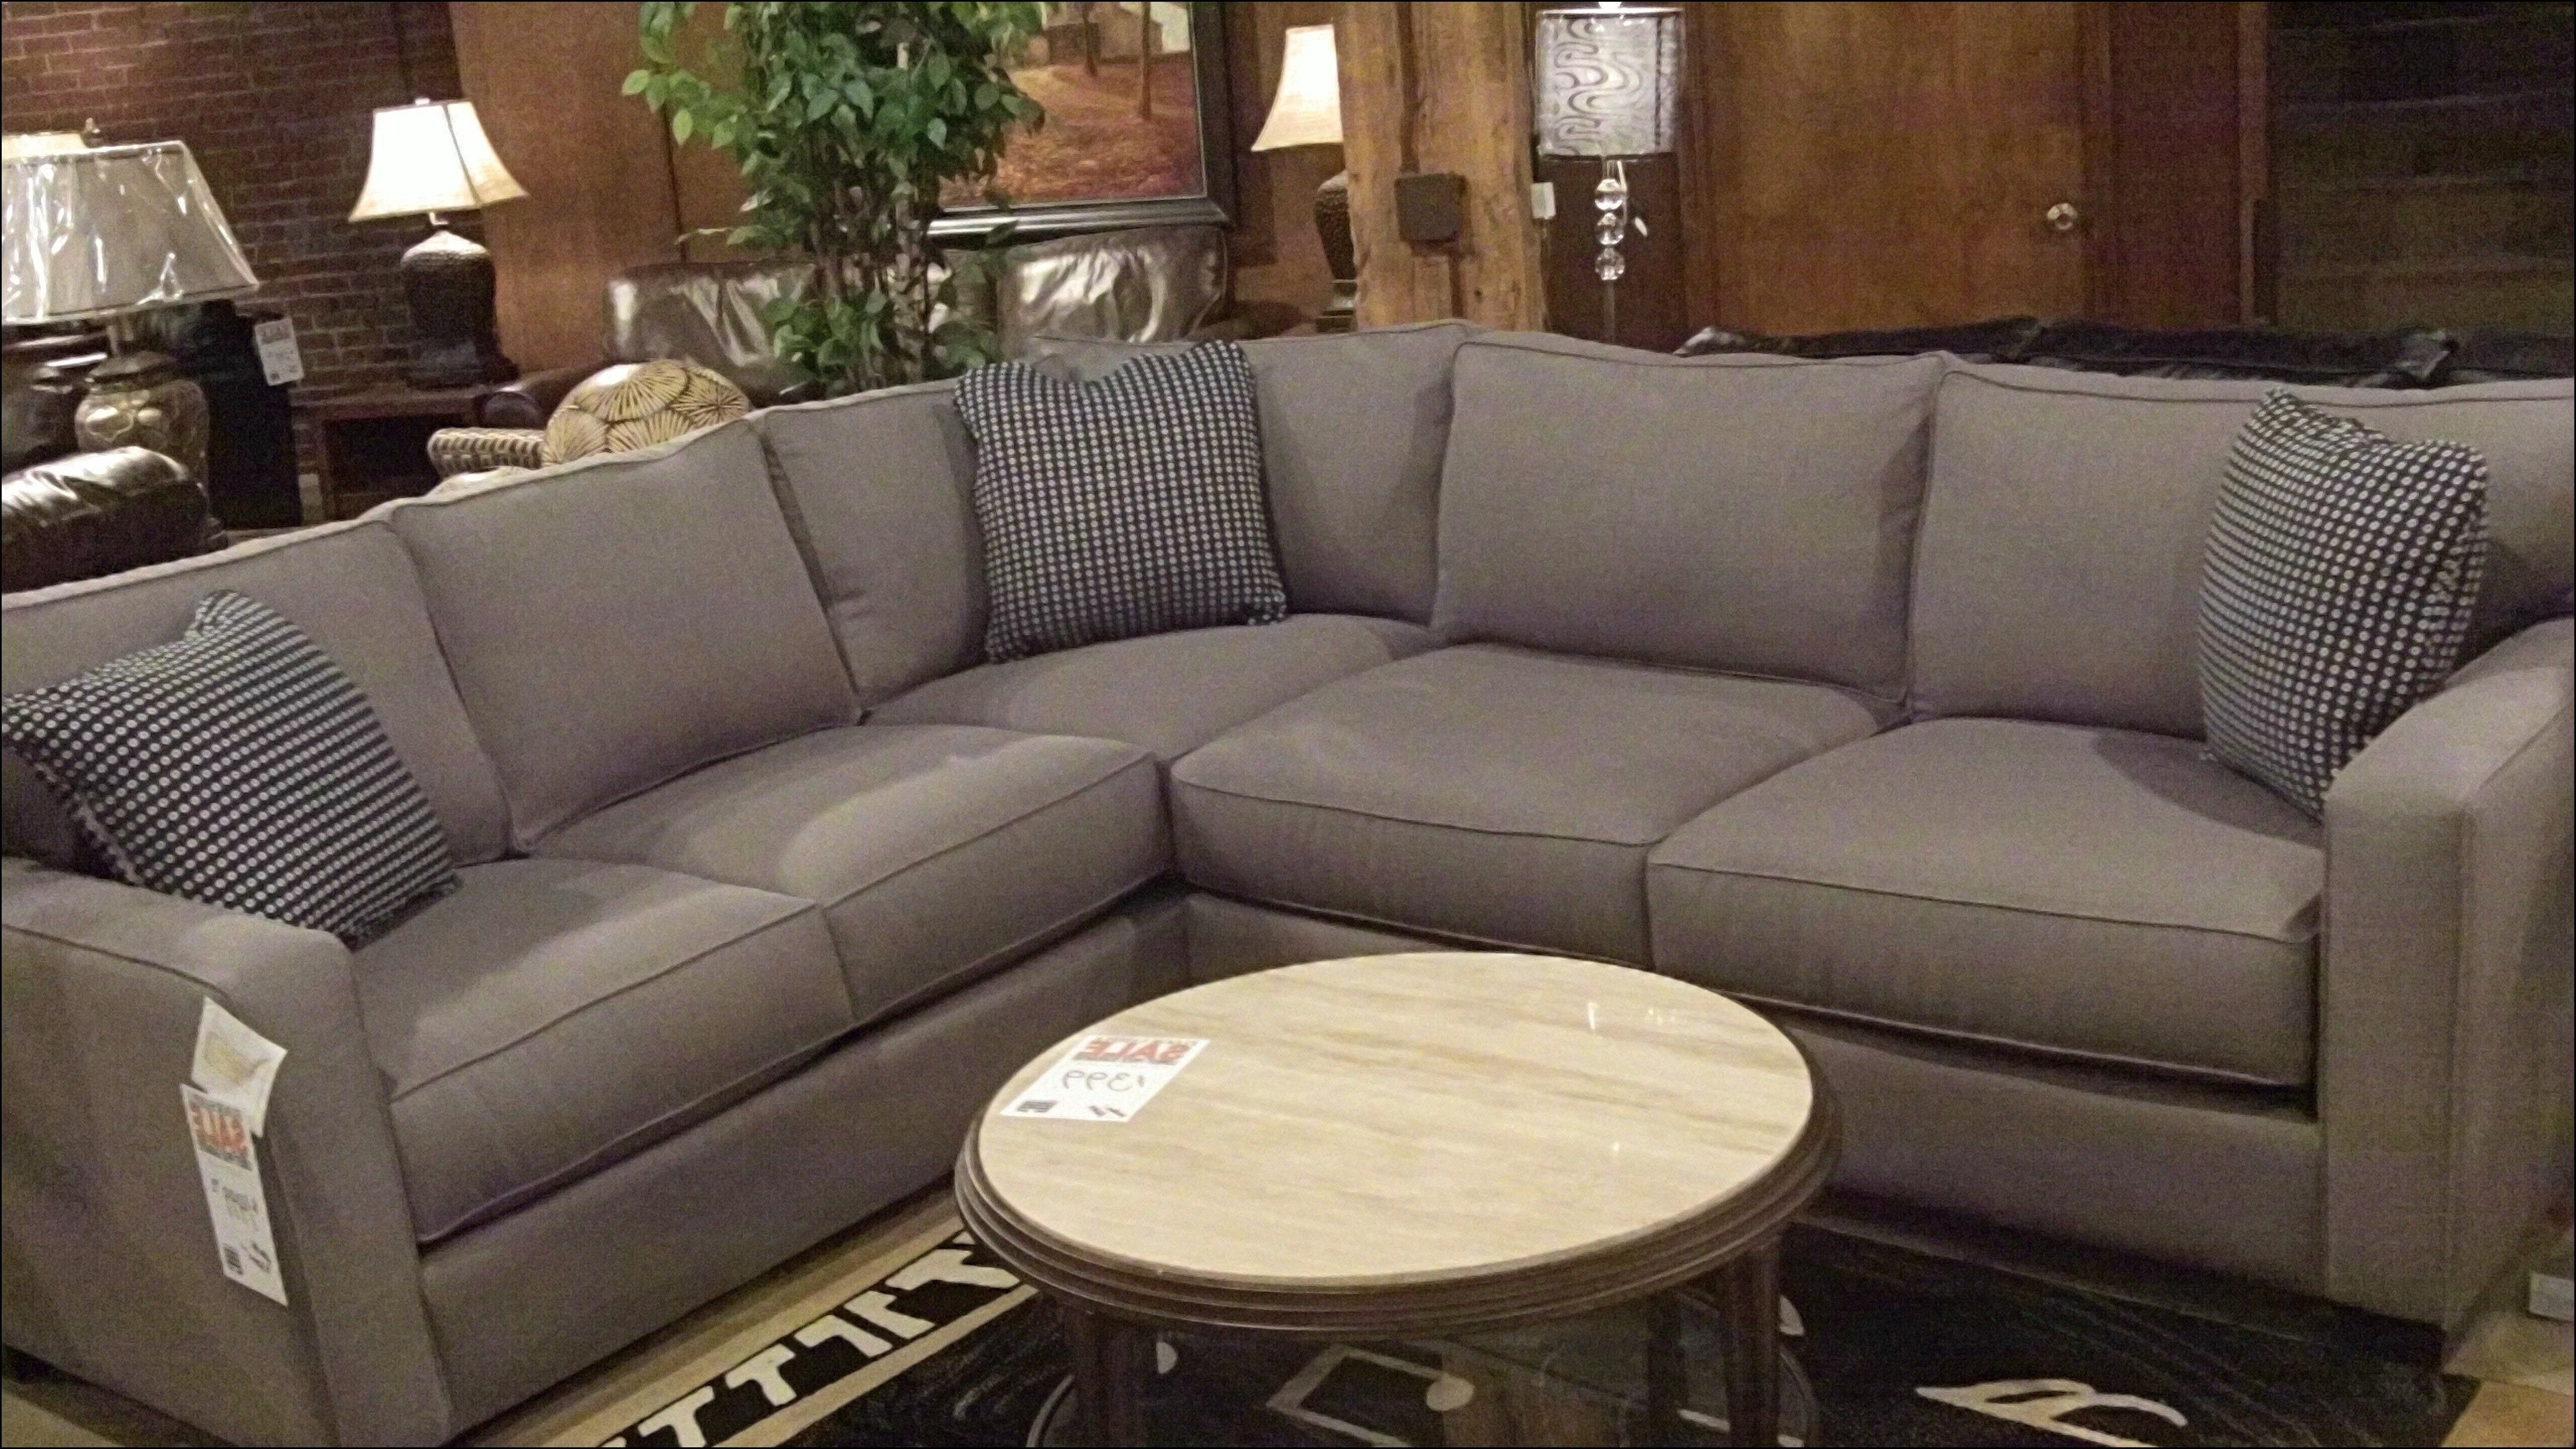 Most Popular Stylish Sectional Sofas Tulsa Ok – Buildsimplehome With Regard To Tulsa Sectional Sofas (Gallery 5 of 20)